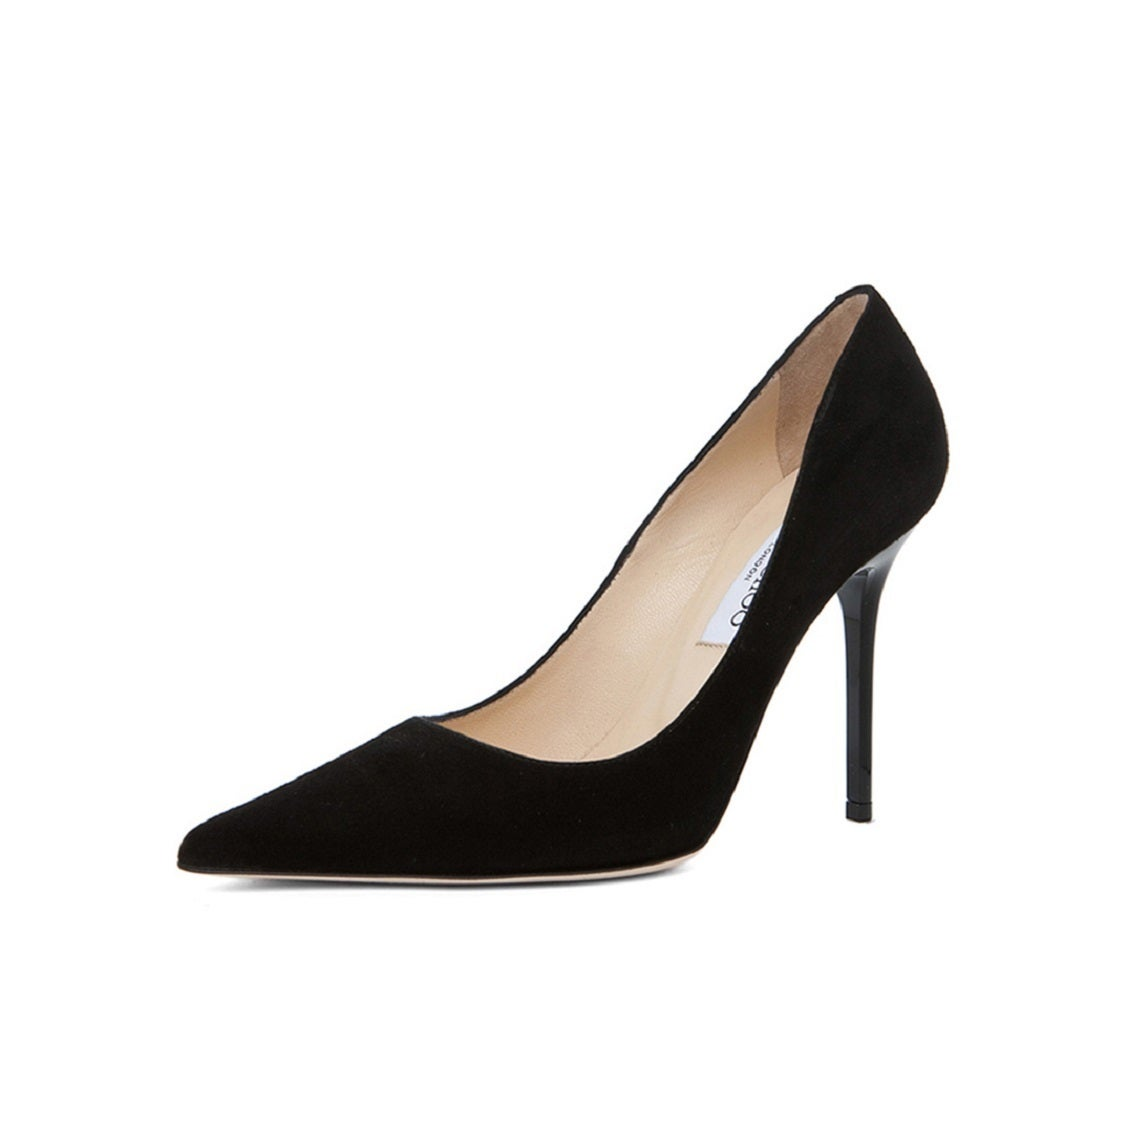 60751e4f772 Shop Jimmy Choo Abel Black Suede Pumps - Ships To Canada - Overstock.ca -  14720298